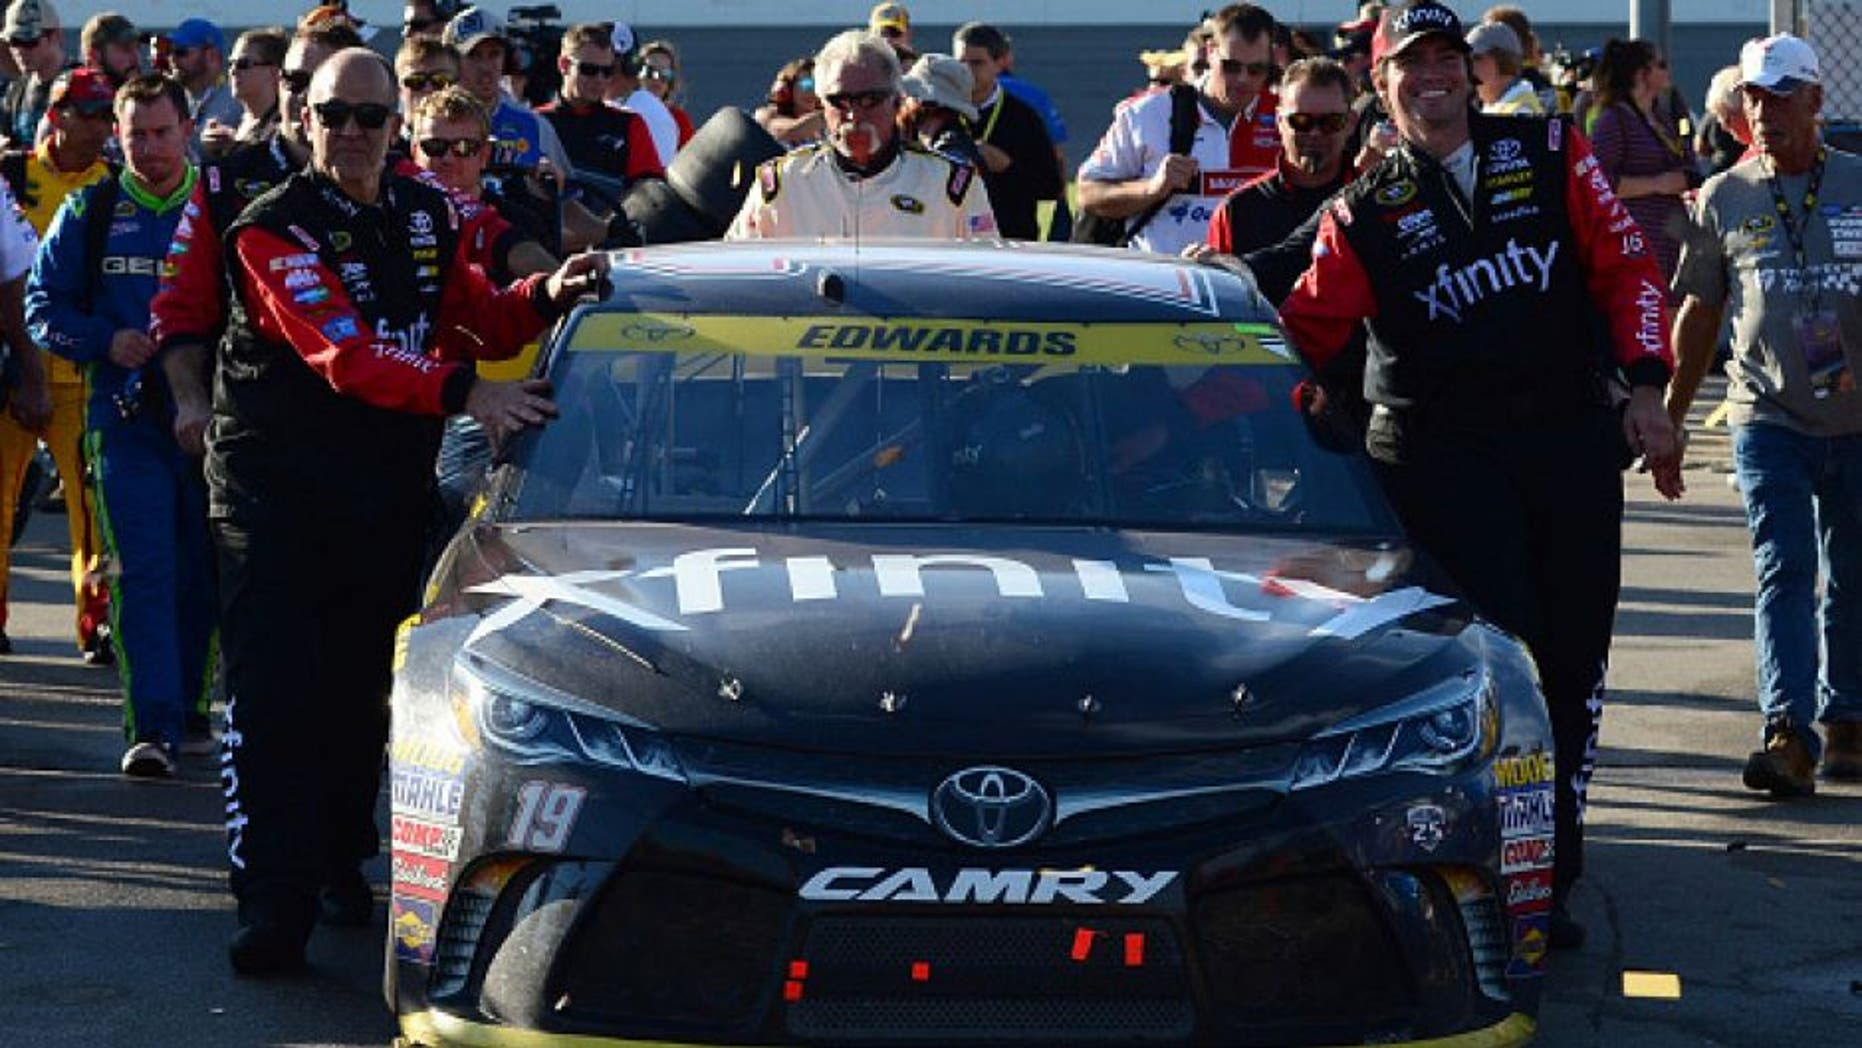 KANSAS CITY, KS - OCTOBER 16: Crew members push the #19 Xfinity Toyota through the garage area after the NASCAR Sprint Cup Series Hollywood Casino 400 at Kansas Speedway on October 16, 2016 in Kansas City, Kansas. (Photo by Jeff Curry/Getty Images)